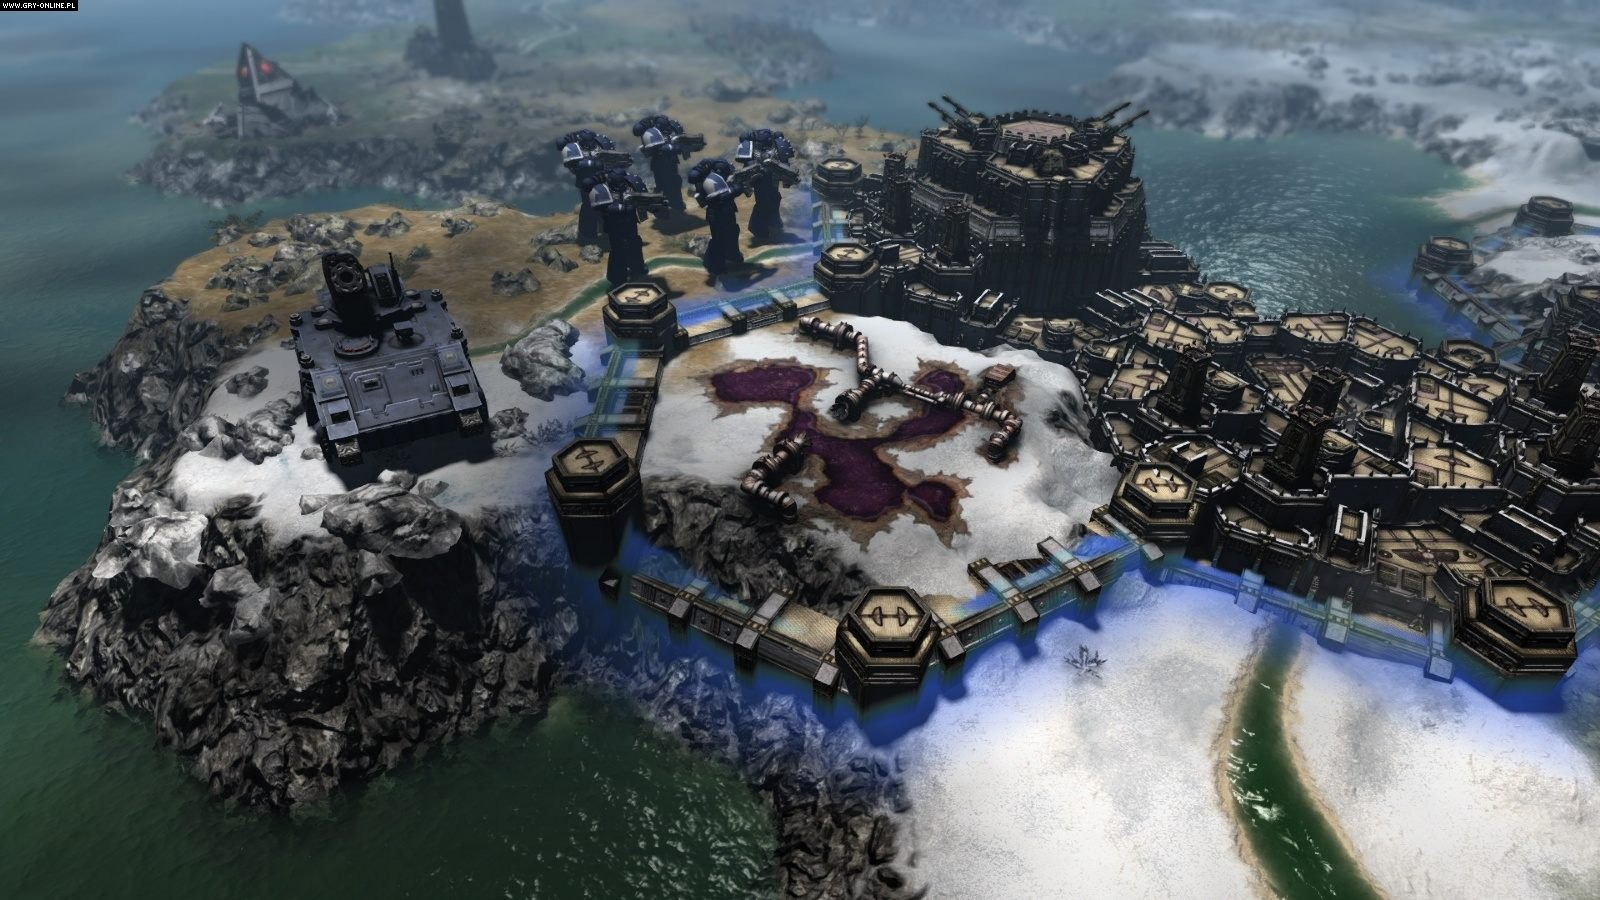 Warhammer 40,000: Gladius - Relics of War PC Gry Screen 4/6, Proxy Studios, Matrix Games/Slitherine